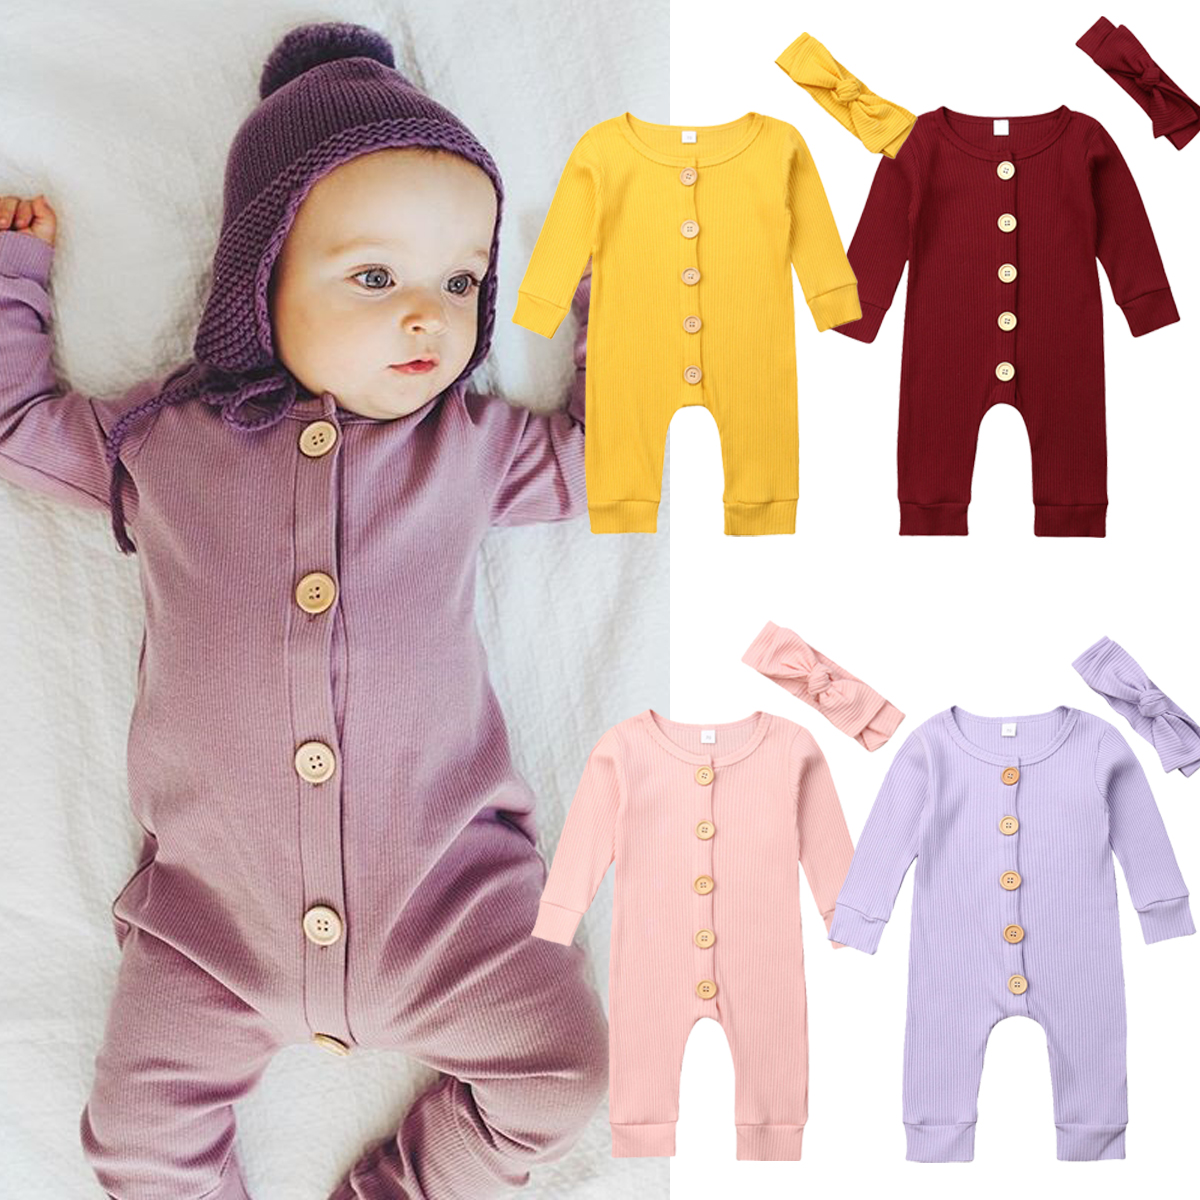 H4559ba700cda4530a89c5a5a0c2d1a9fC Spring Fall Newborn Baby Girl Boy Clothes Long Sleeve Knitted Romper + Headband Jumpsuit 2PCS Outfit 0-24M